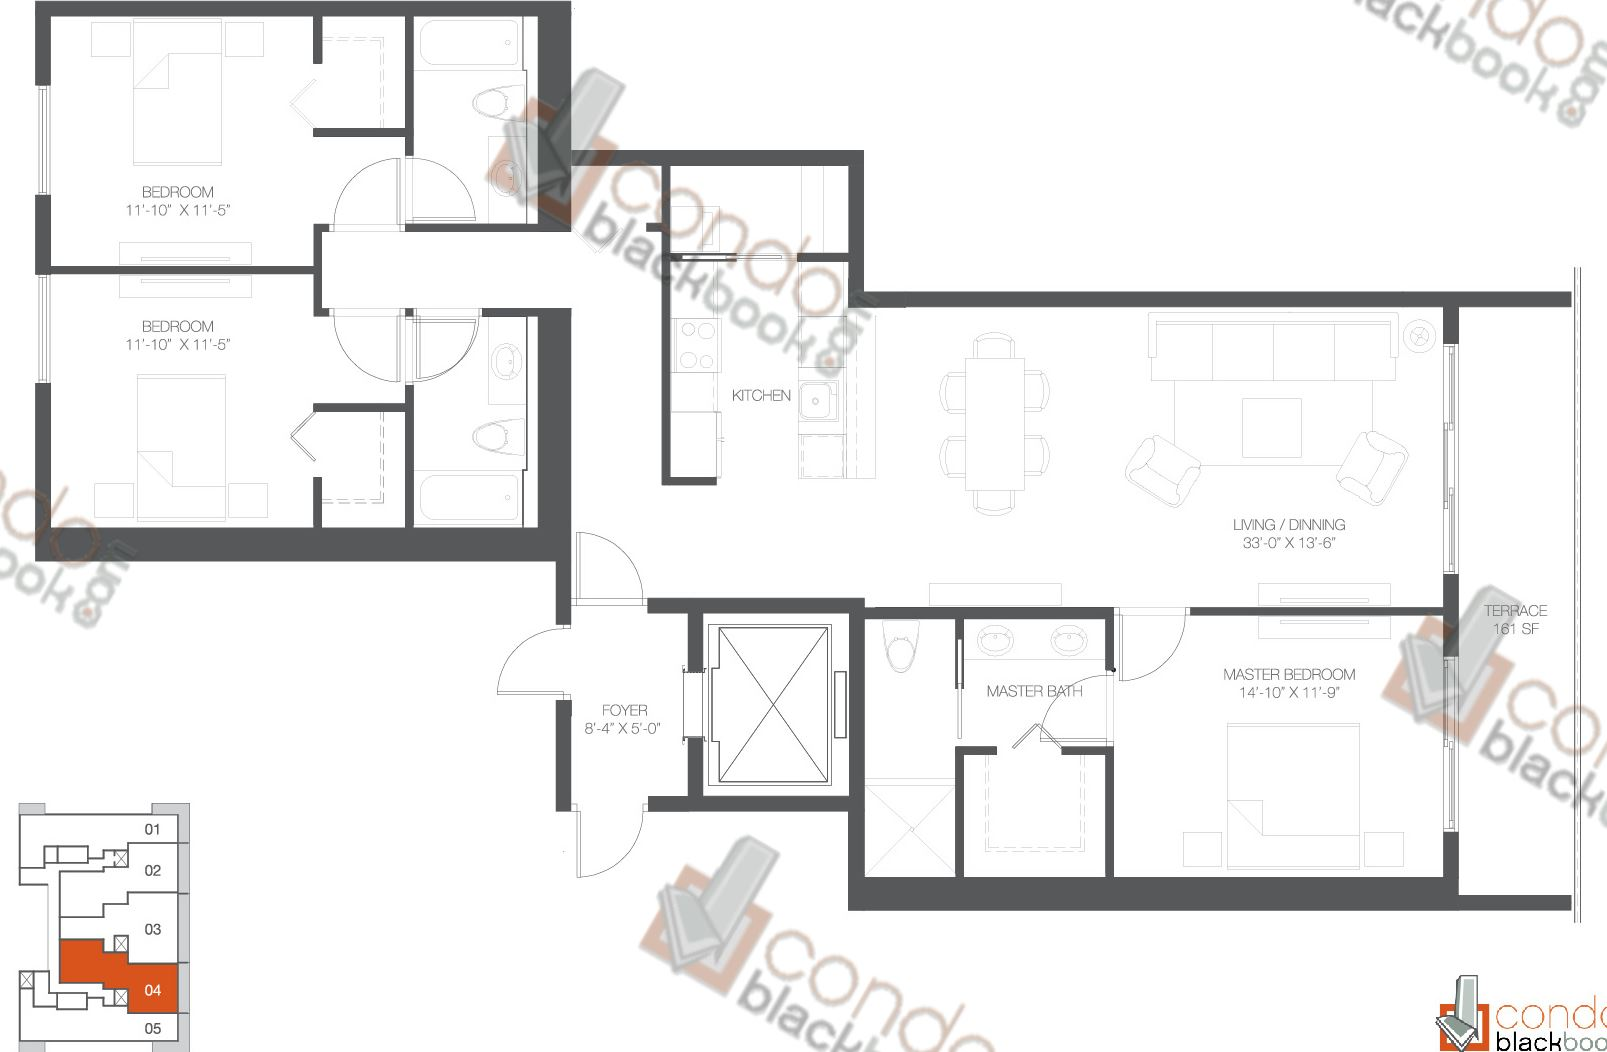 Floor plan for Bay House Edgewater Miami, model Residence 04, line 04, 3/3 bedrooms, 1,762 sq ft